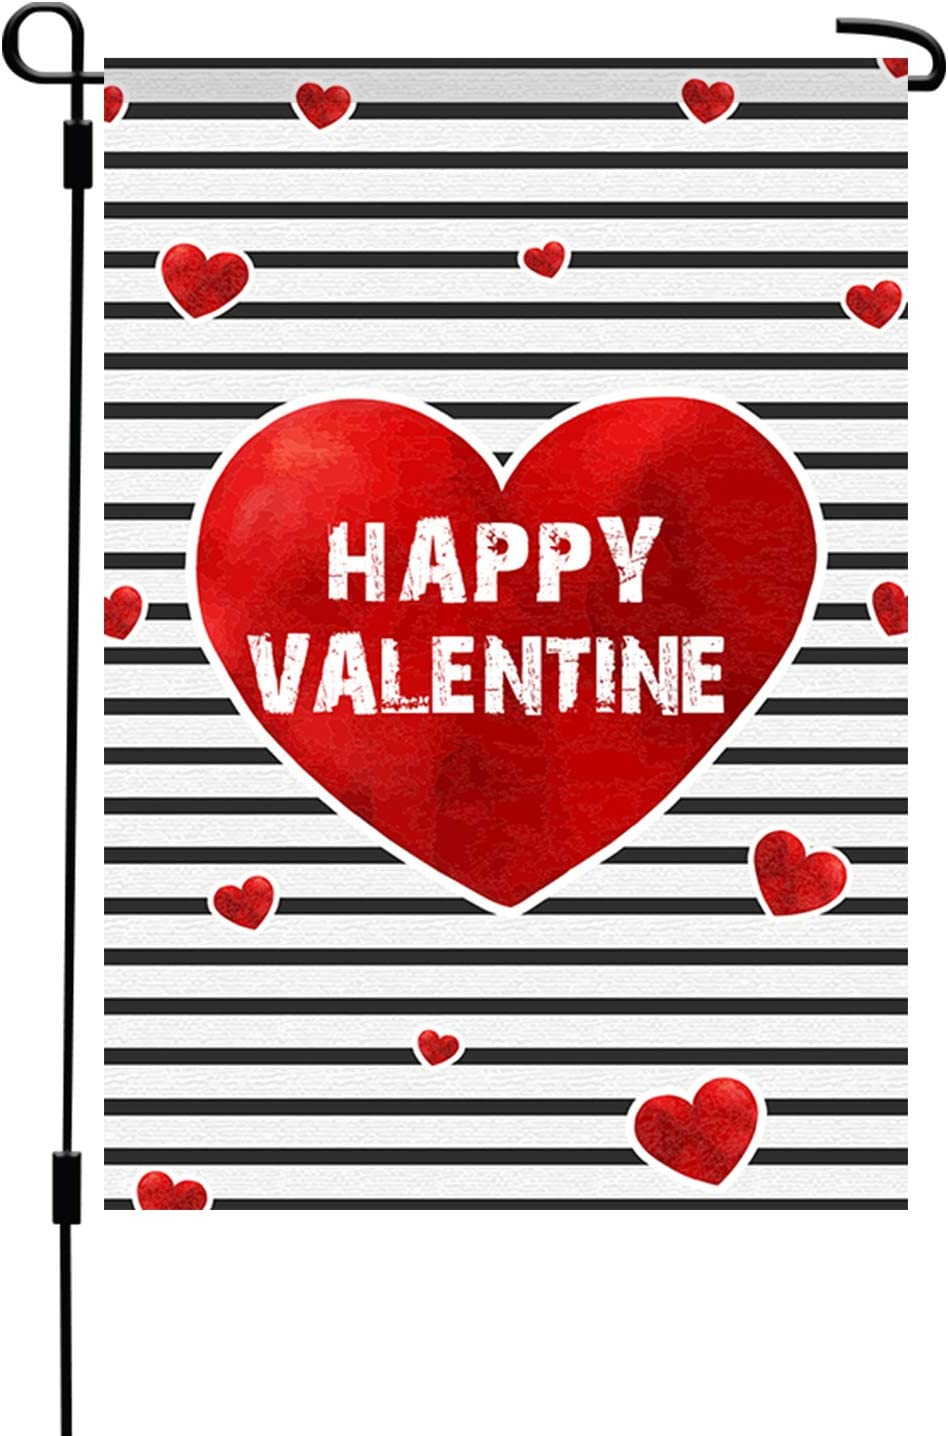 Amazon Com Happy Valentine S Garden Flag Cute Red Heart 12 X 18 Decorative Yard Lawn Decor Polyester Fabric Flag For Valentines Party Indoor Outdoor Party Décor Single Sided Print Garden